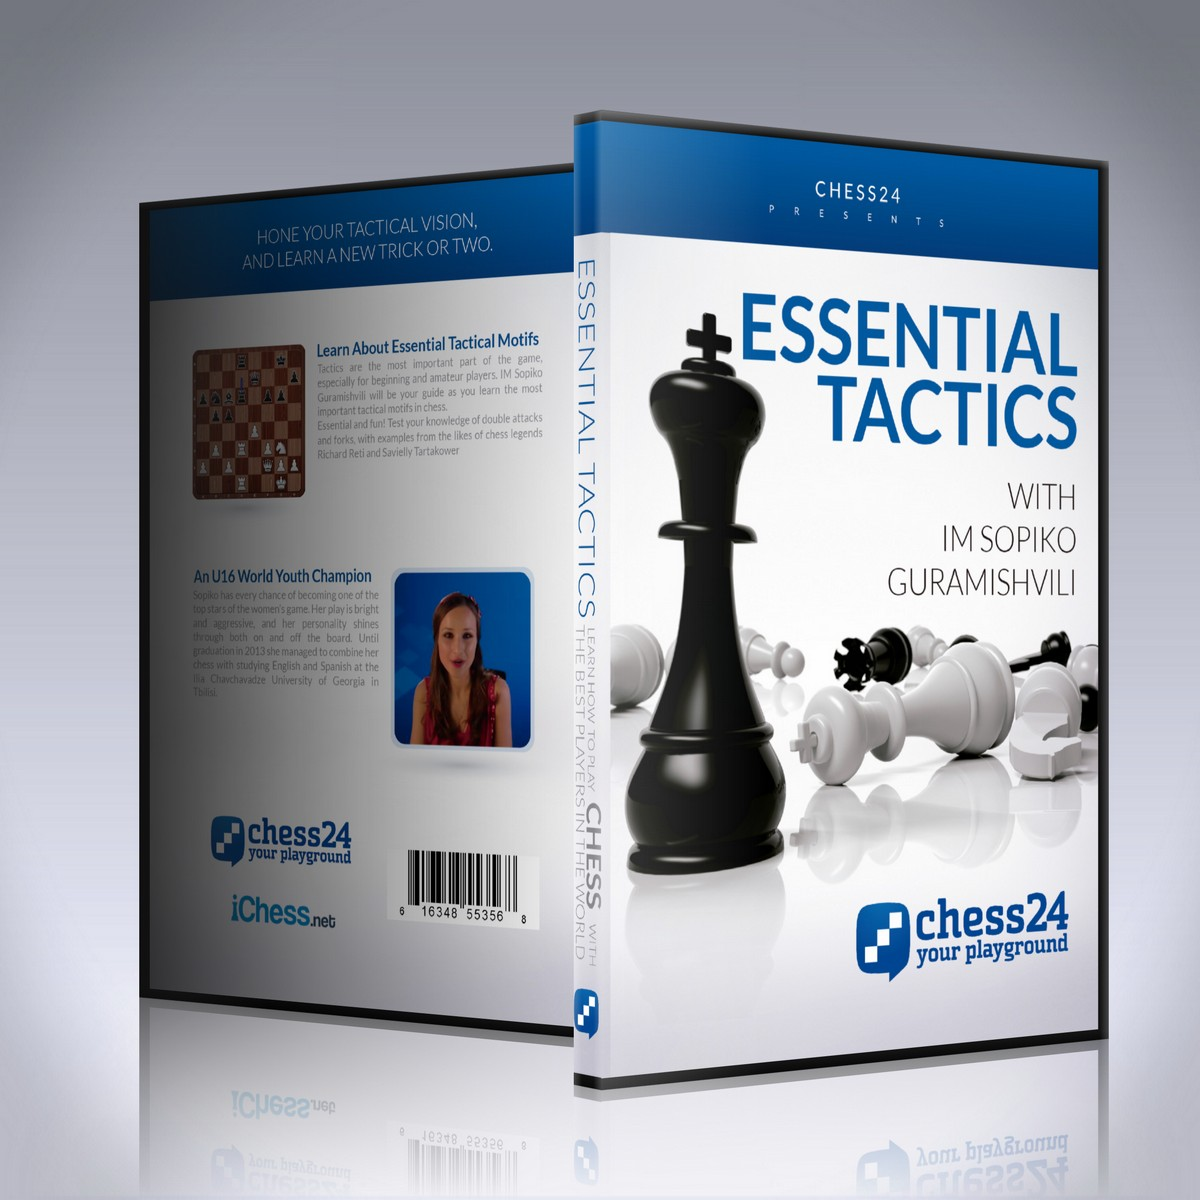 ggn1_04-essential-tactics-box-dvd-1.jpg